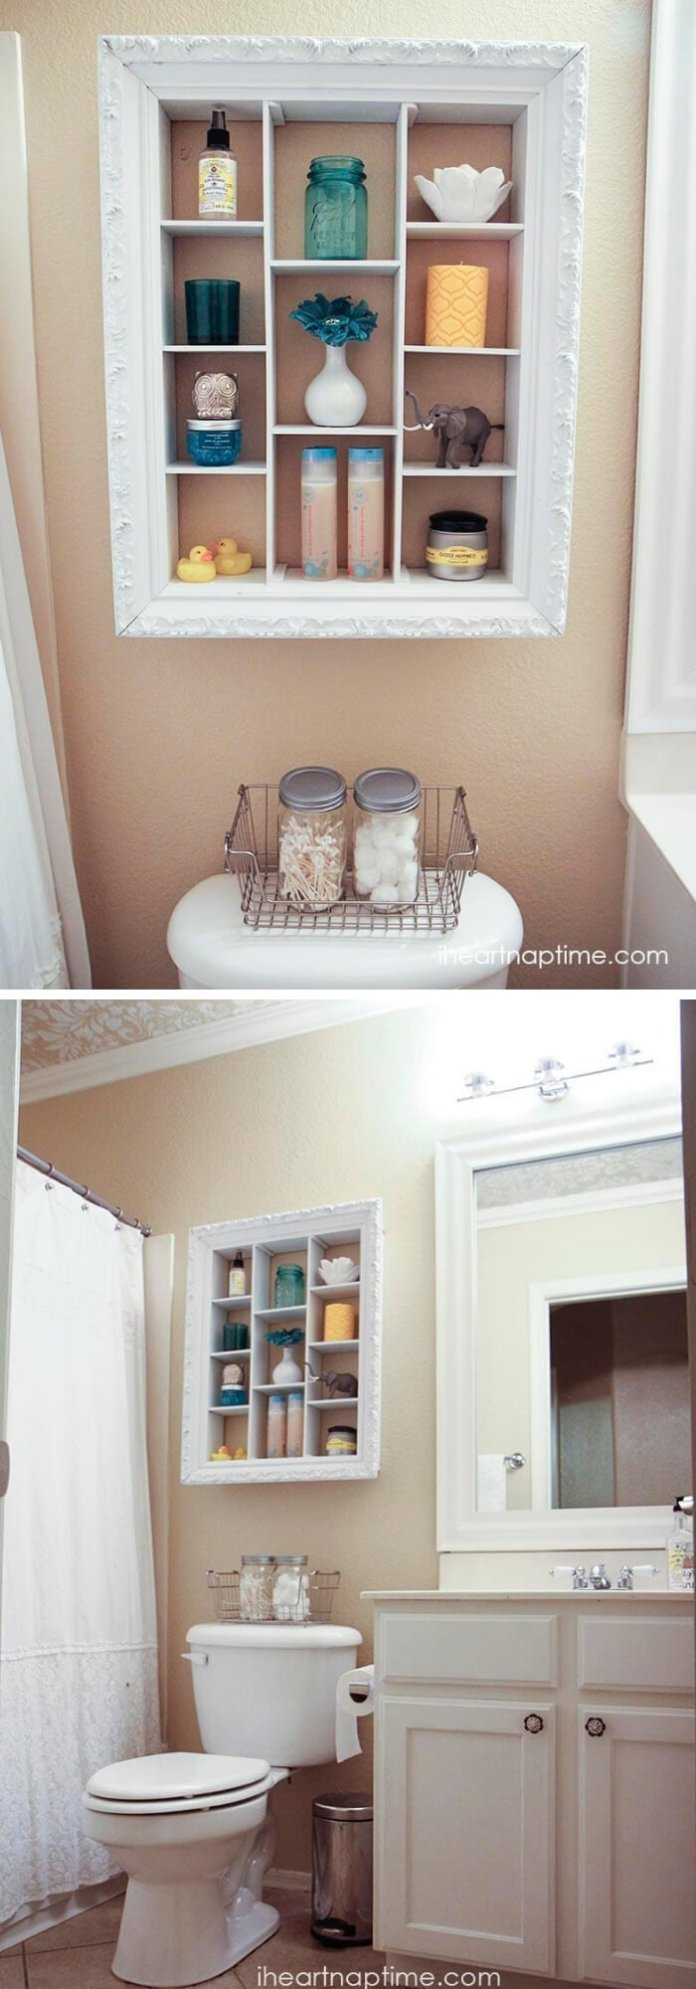 Storage Shelf Makeover | Best Over the Toilet Storage Ideas for Bathroom